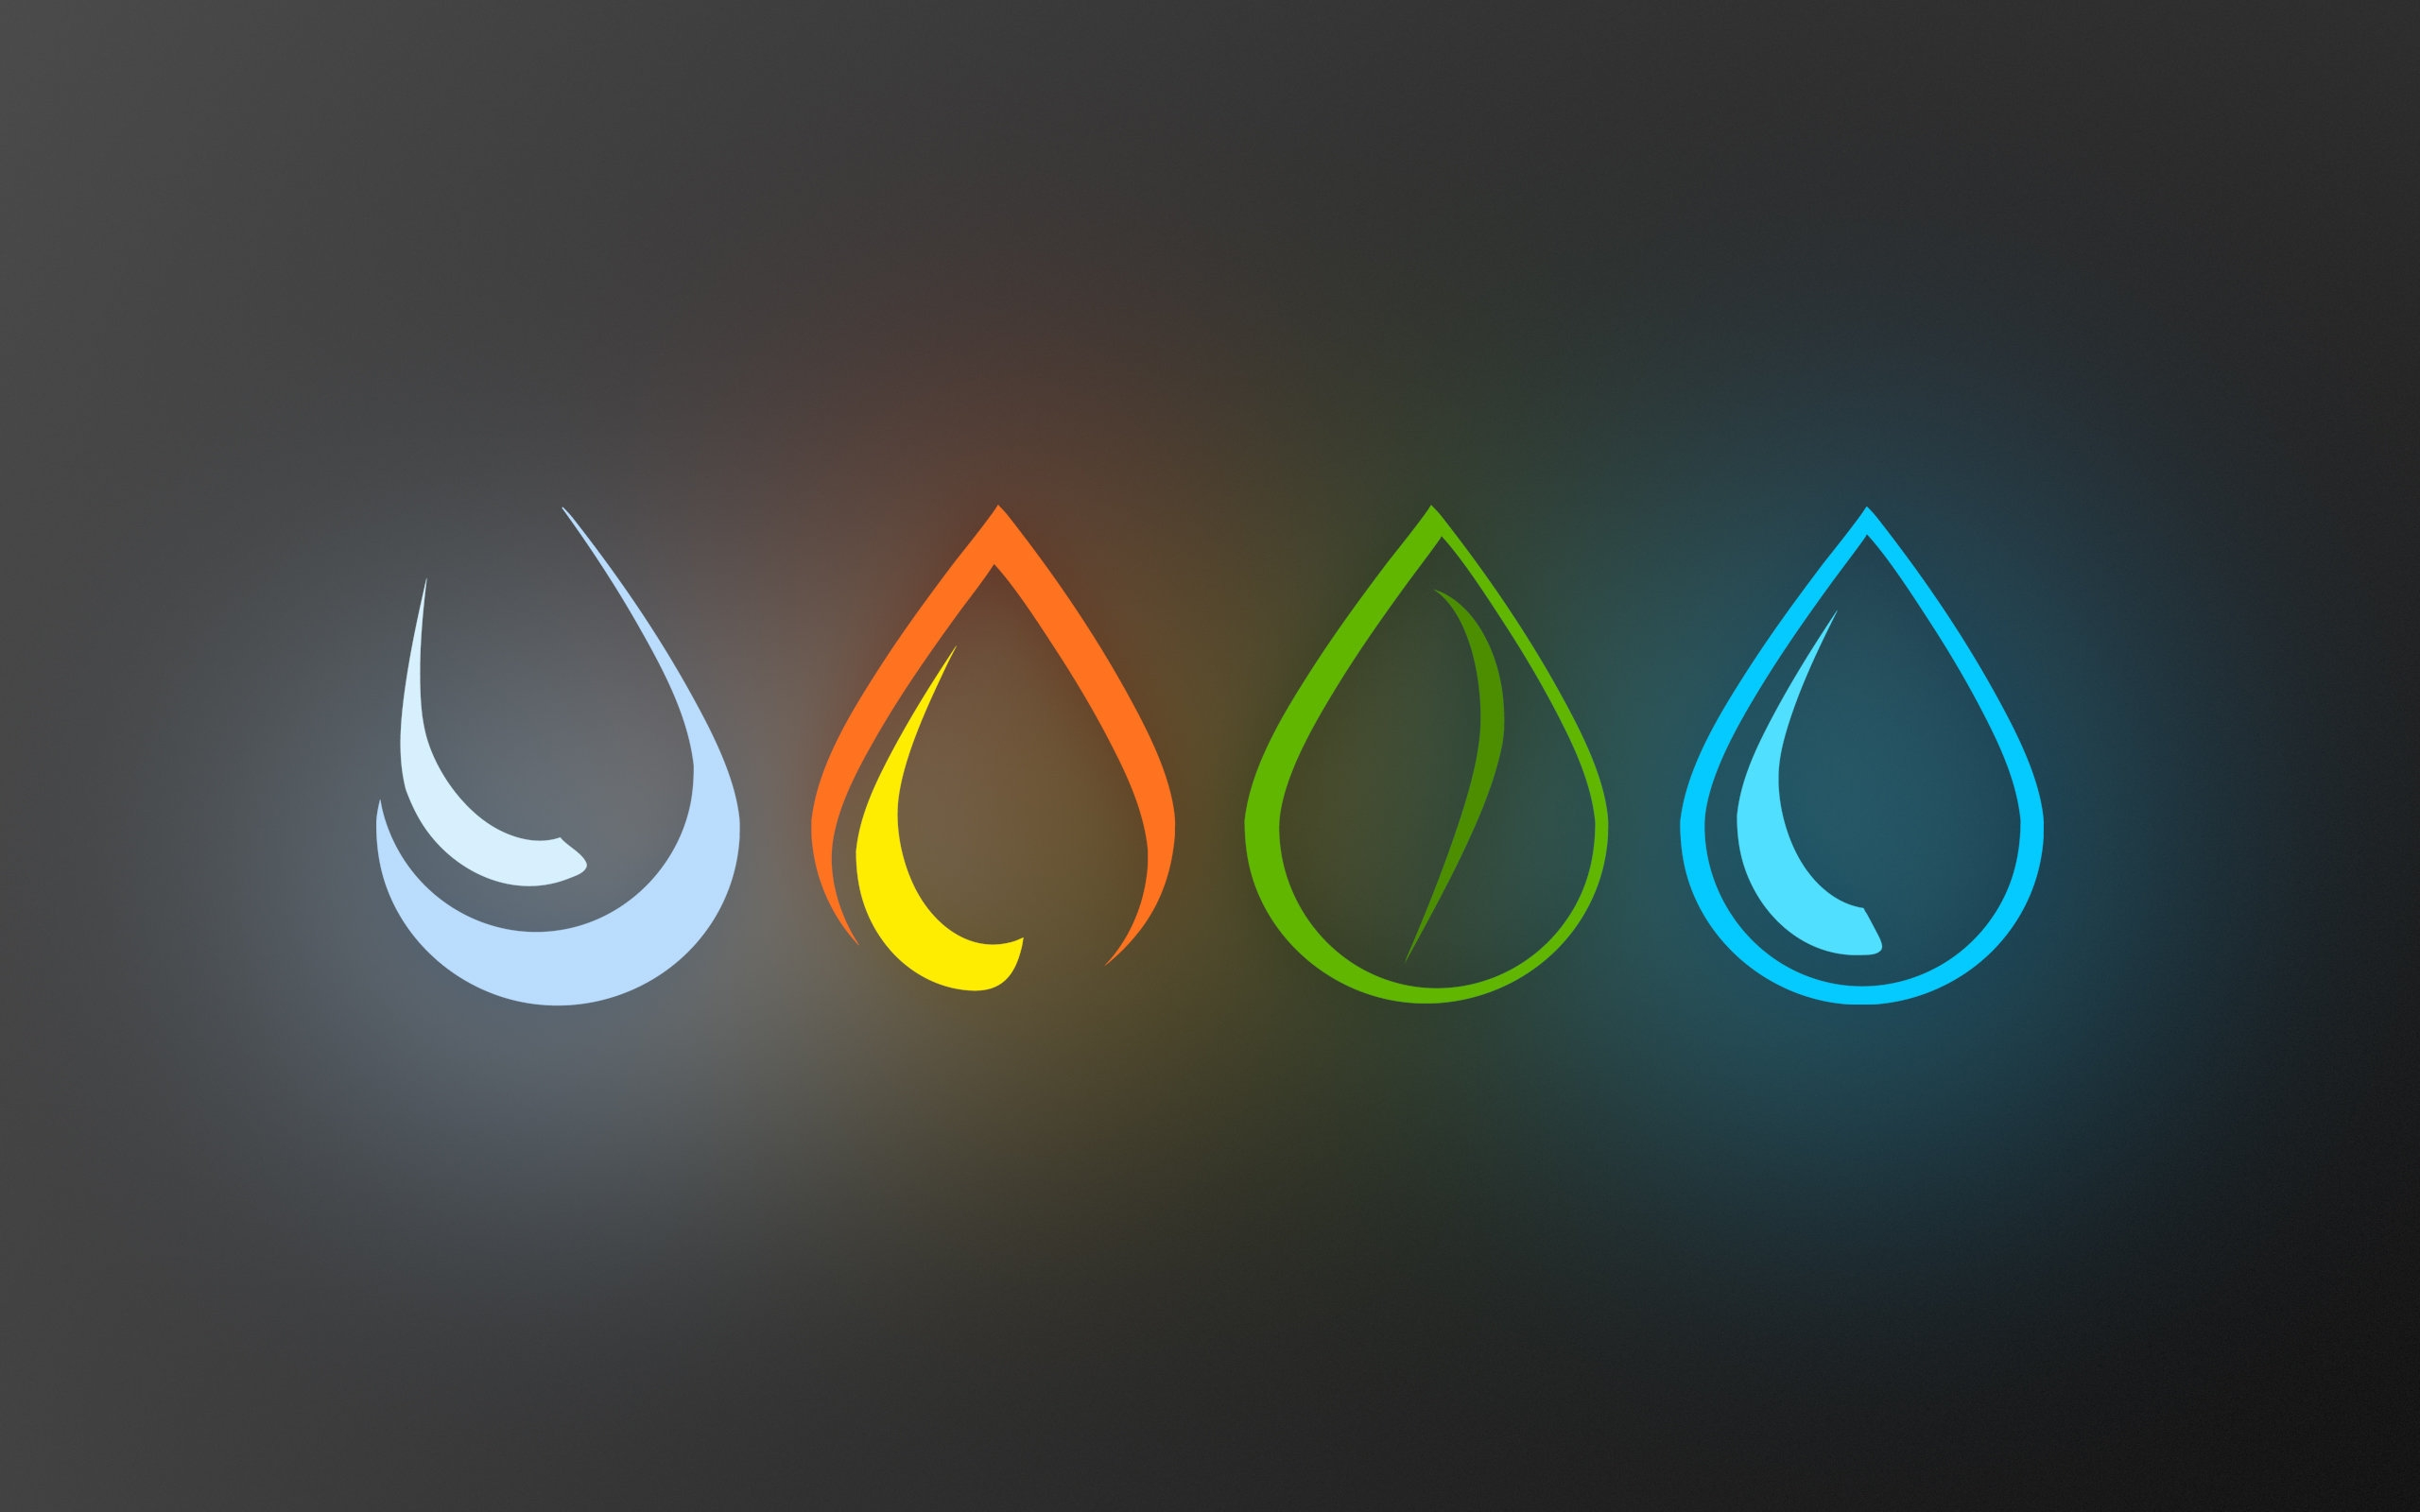 The Four Elements Water - Earth- Fire - Air Wallpapers HD